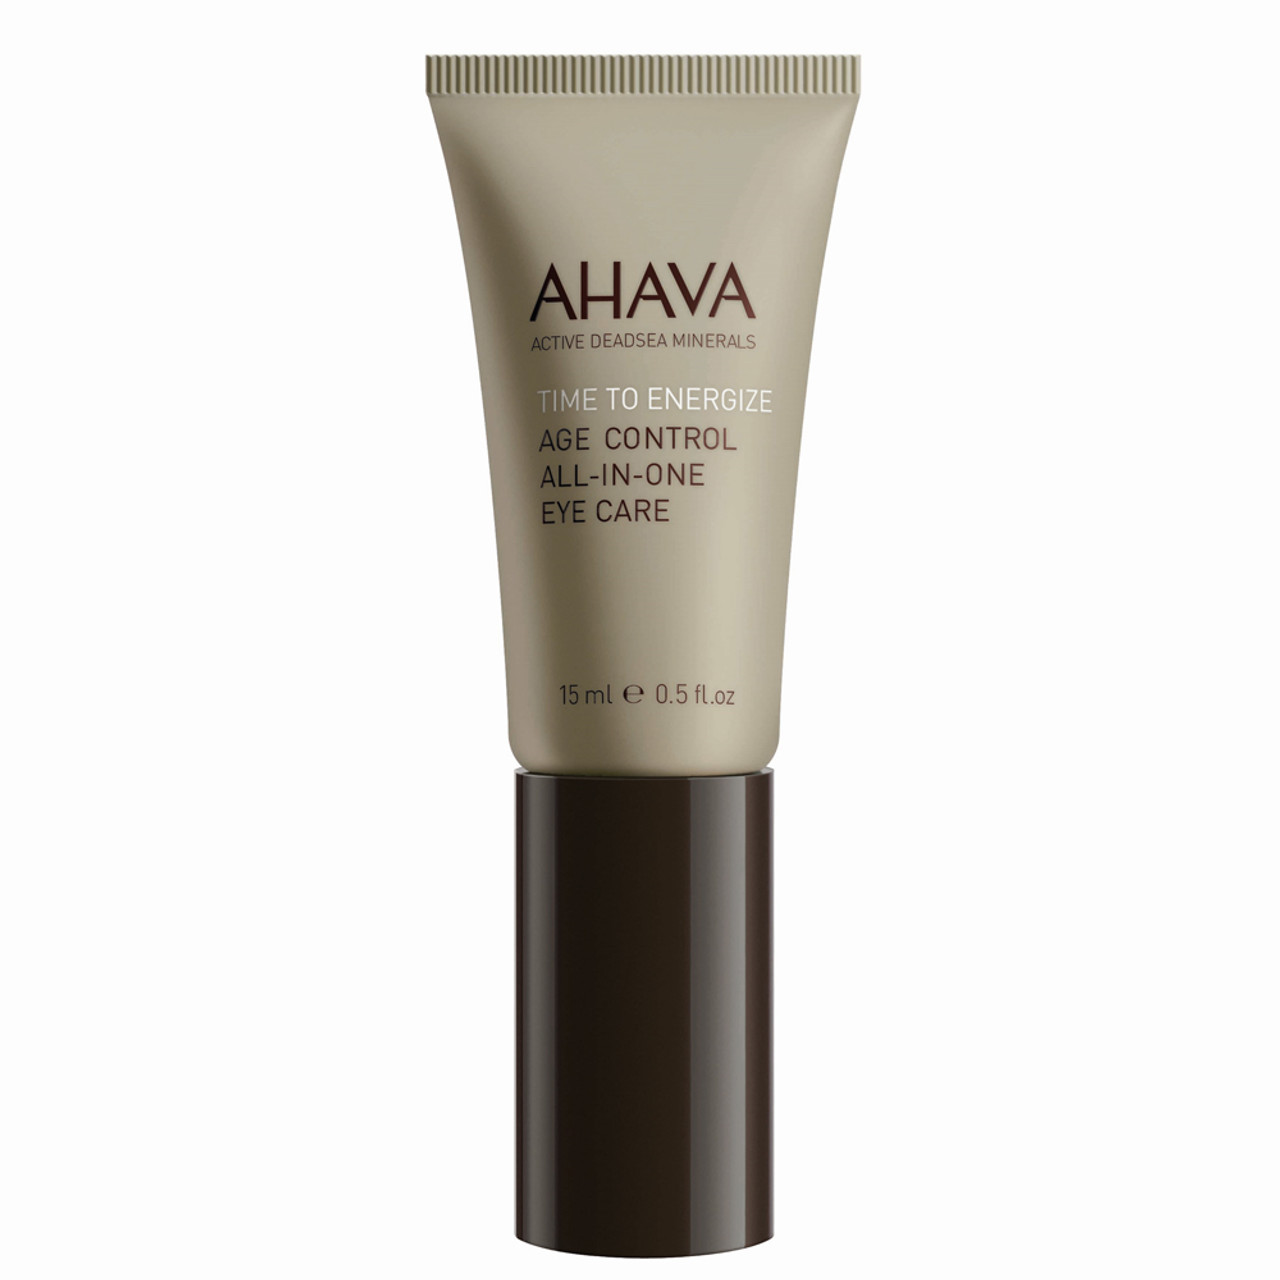 AHAVA Mens Age Control All-In-One Eye Care